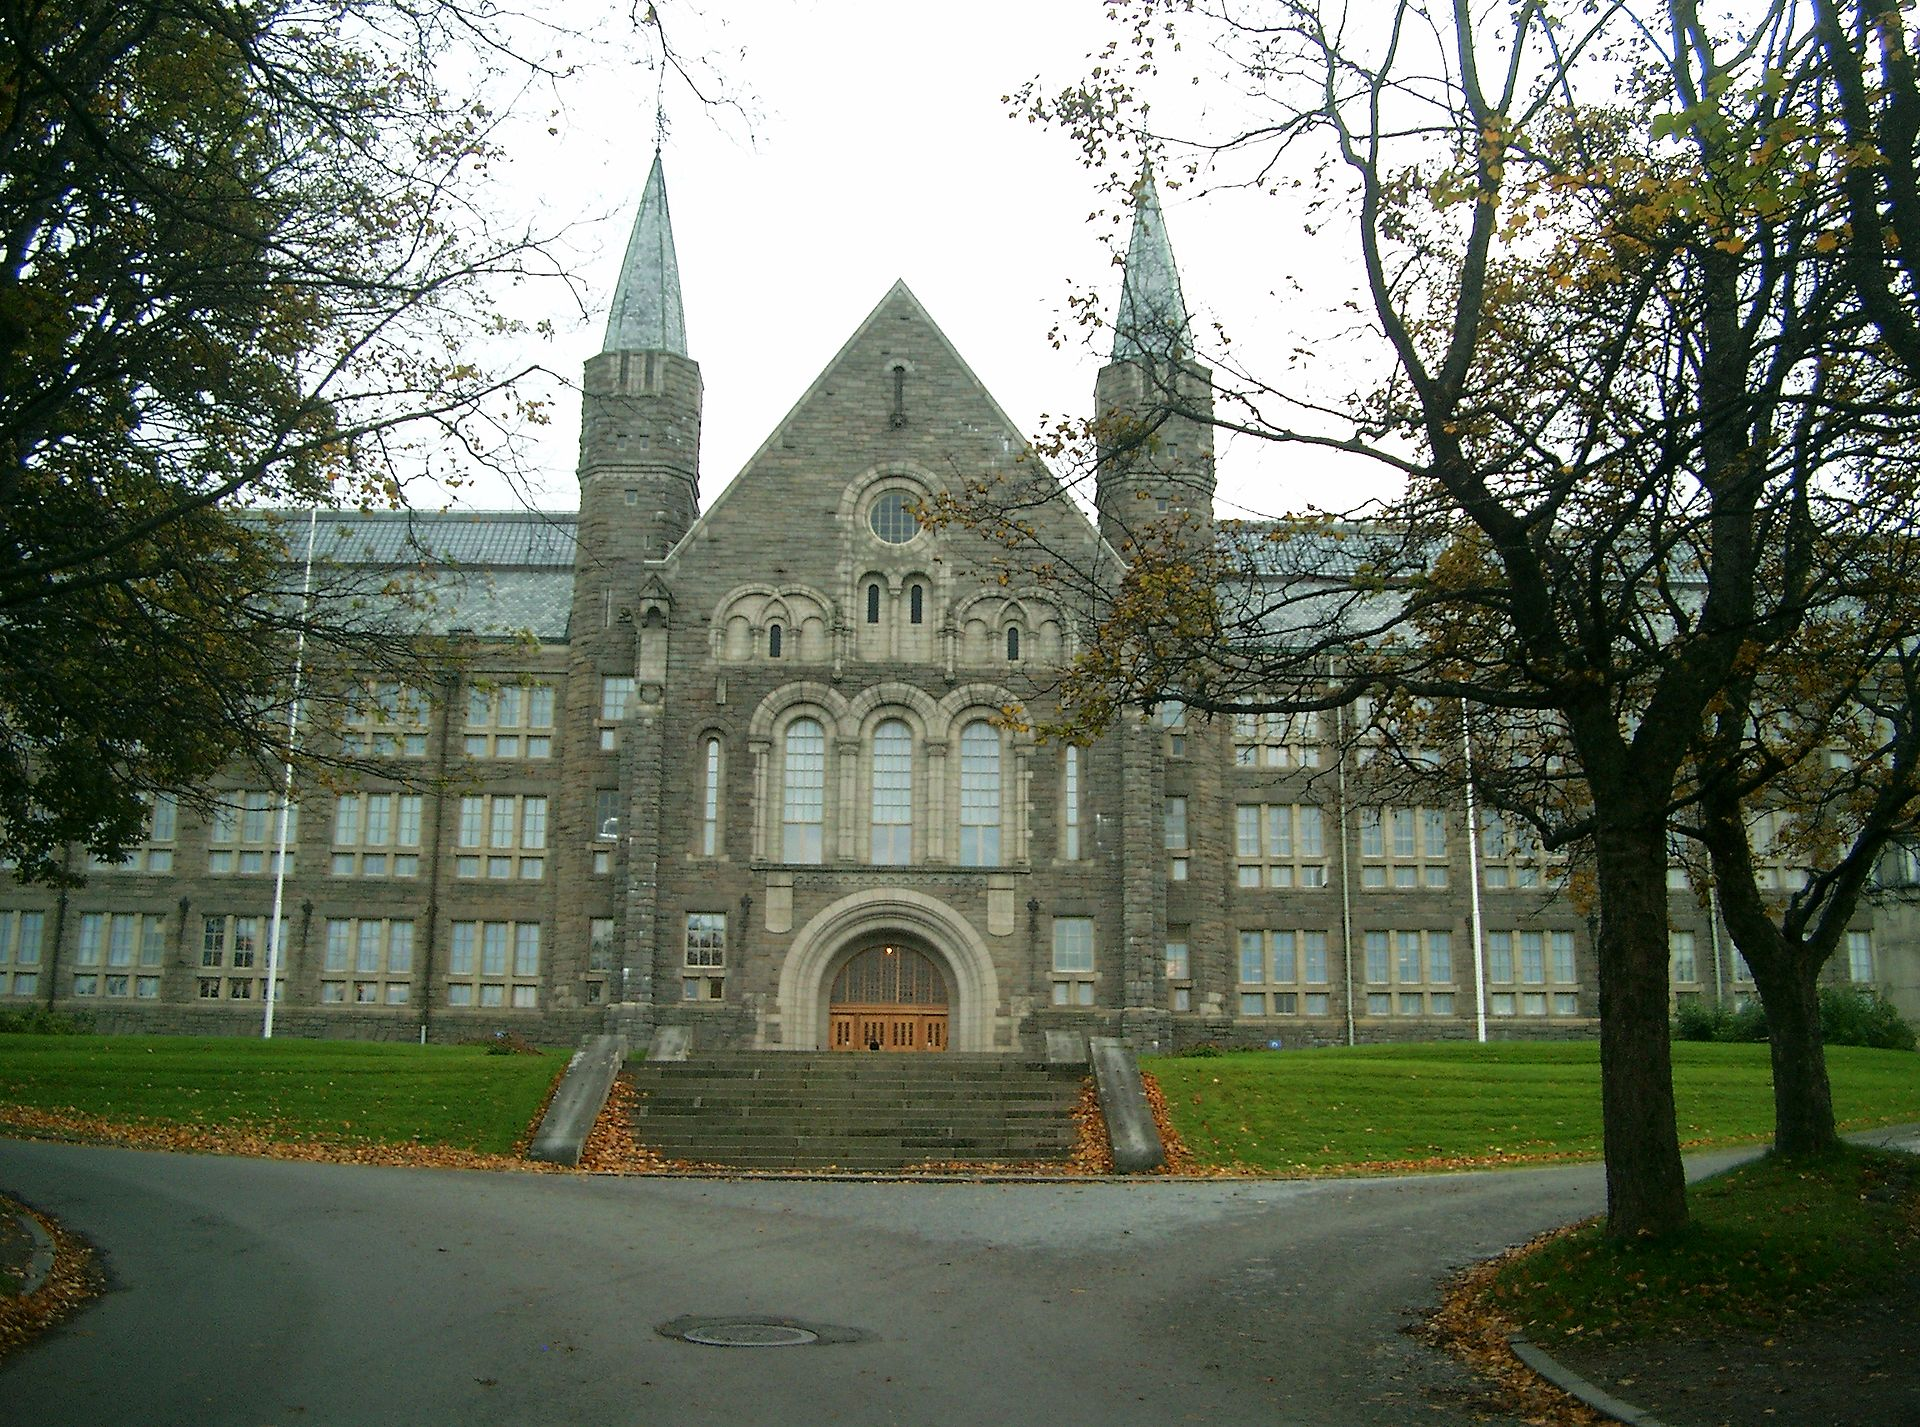 NTNU - Norwegian University of Science and Technology ...